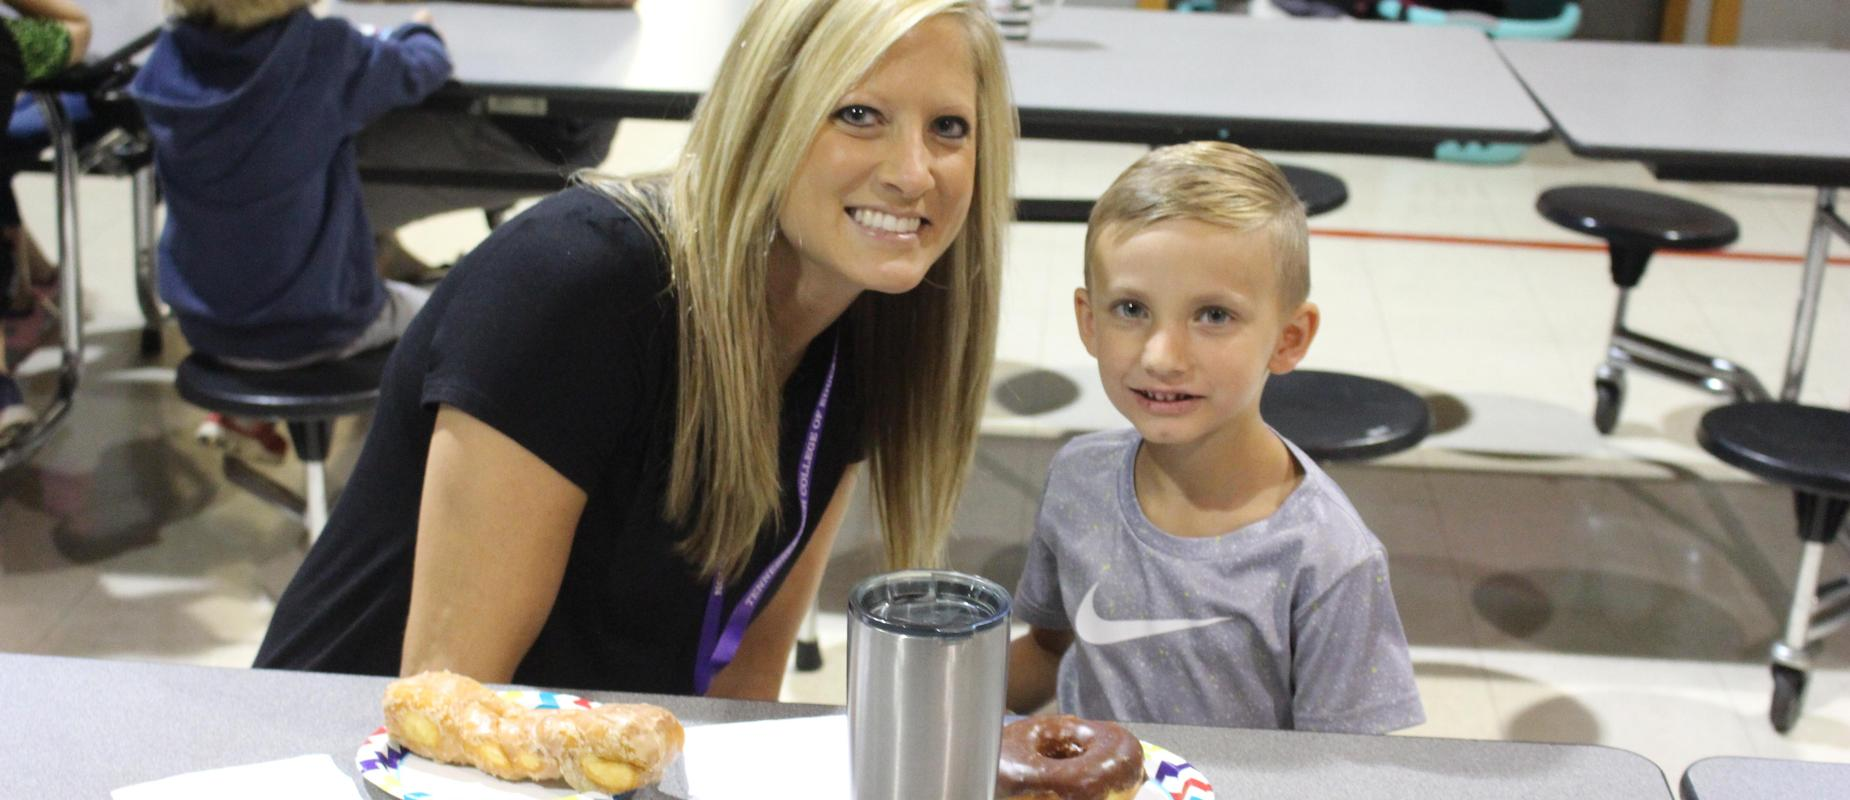 parent having donuts with student